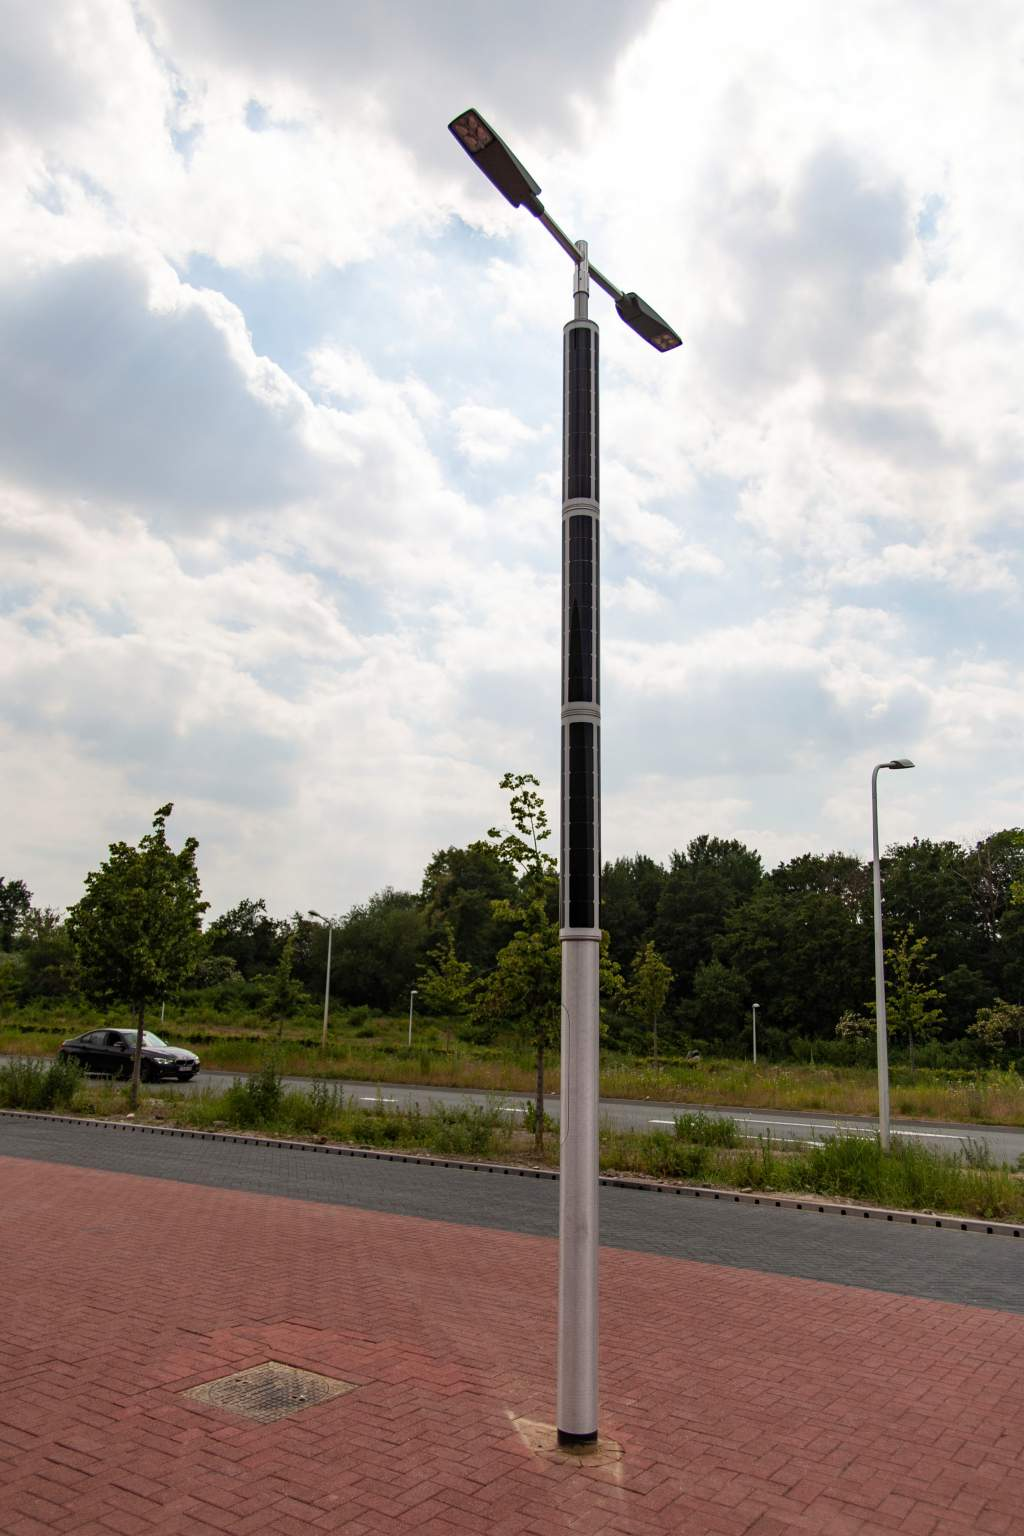 Solar lighting for public parking lot by Soluxio